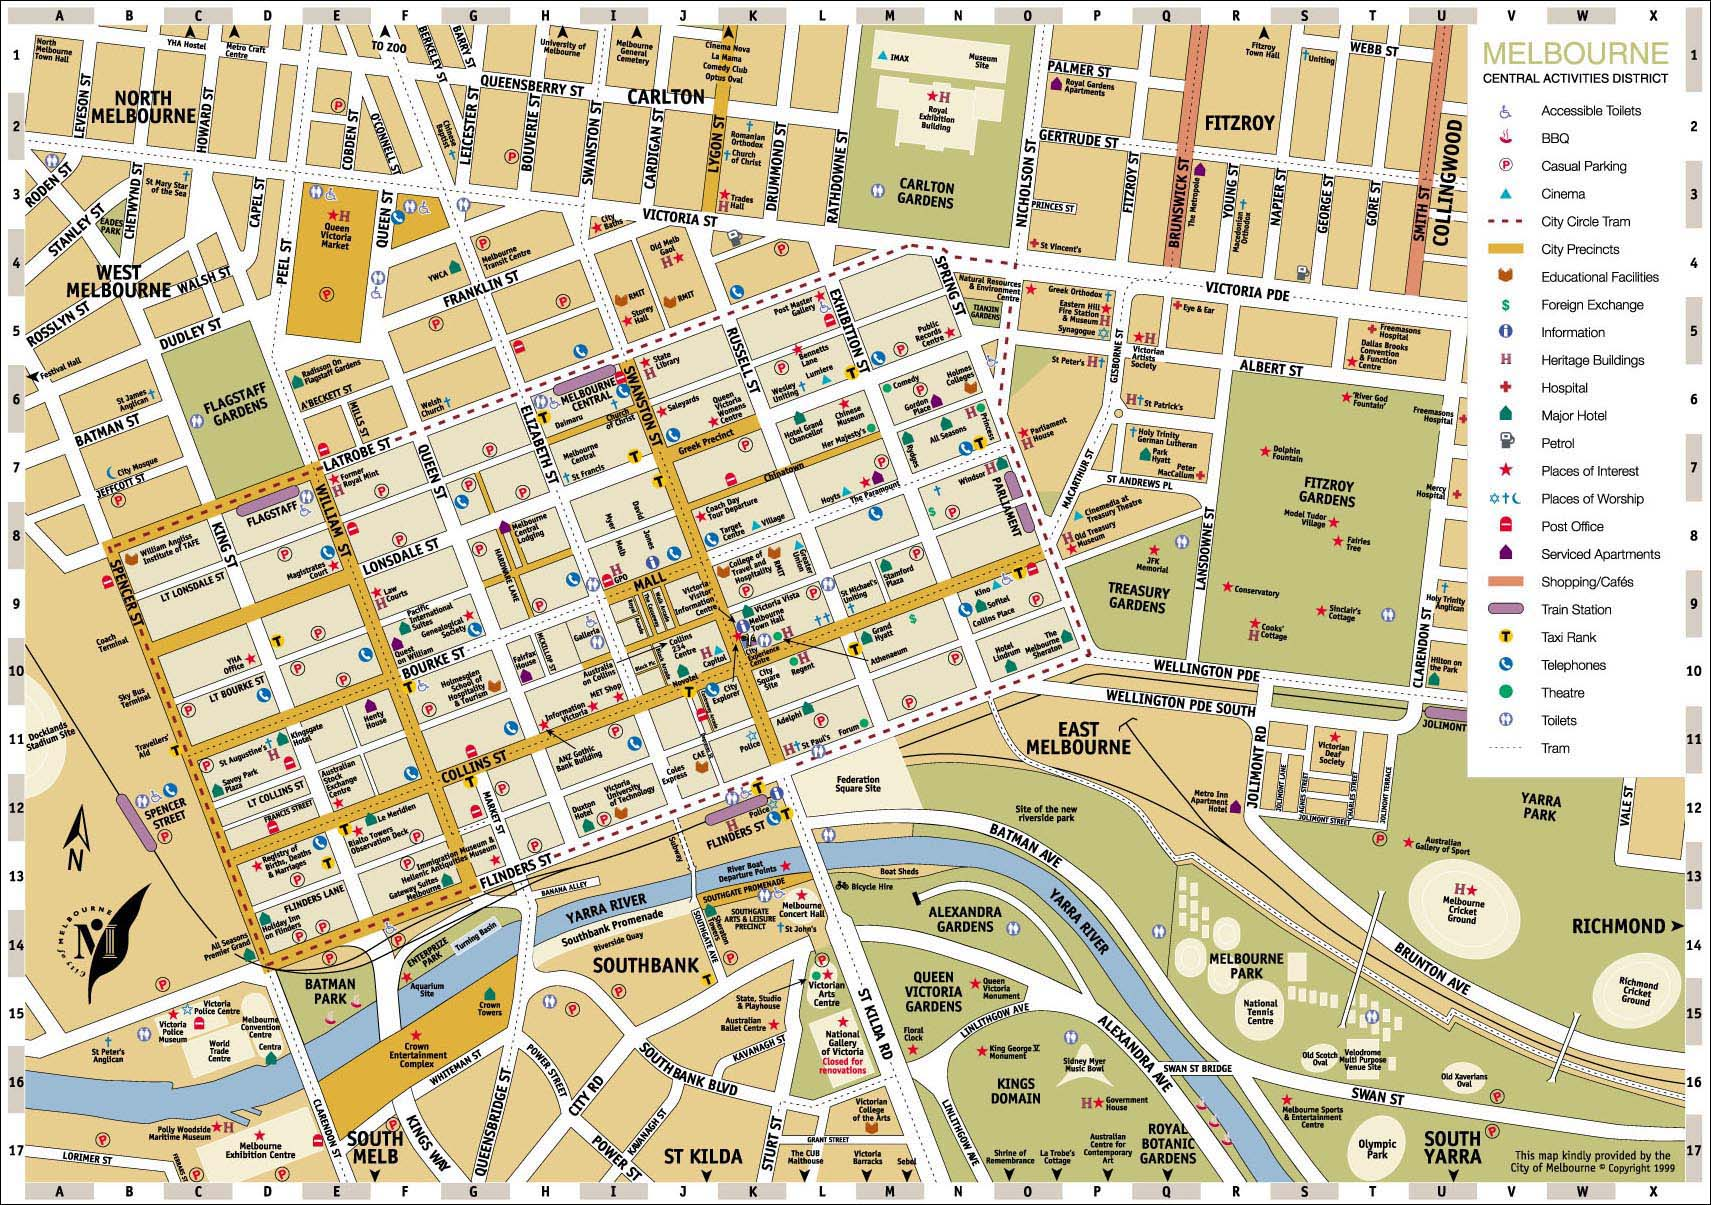 Melbourne Central District Tourist Map Melbourne Australia mappery – Melbourne Map For Tourist